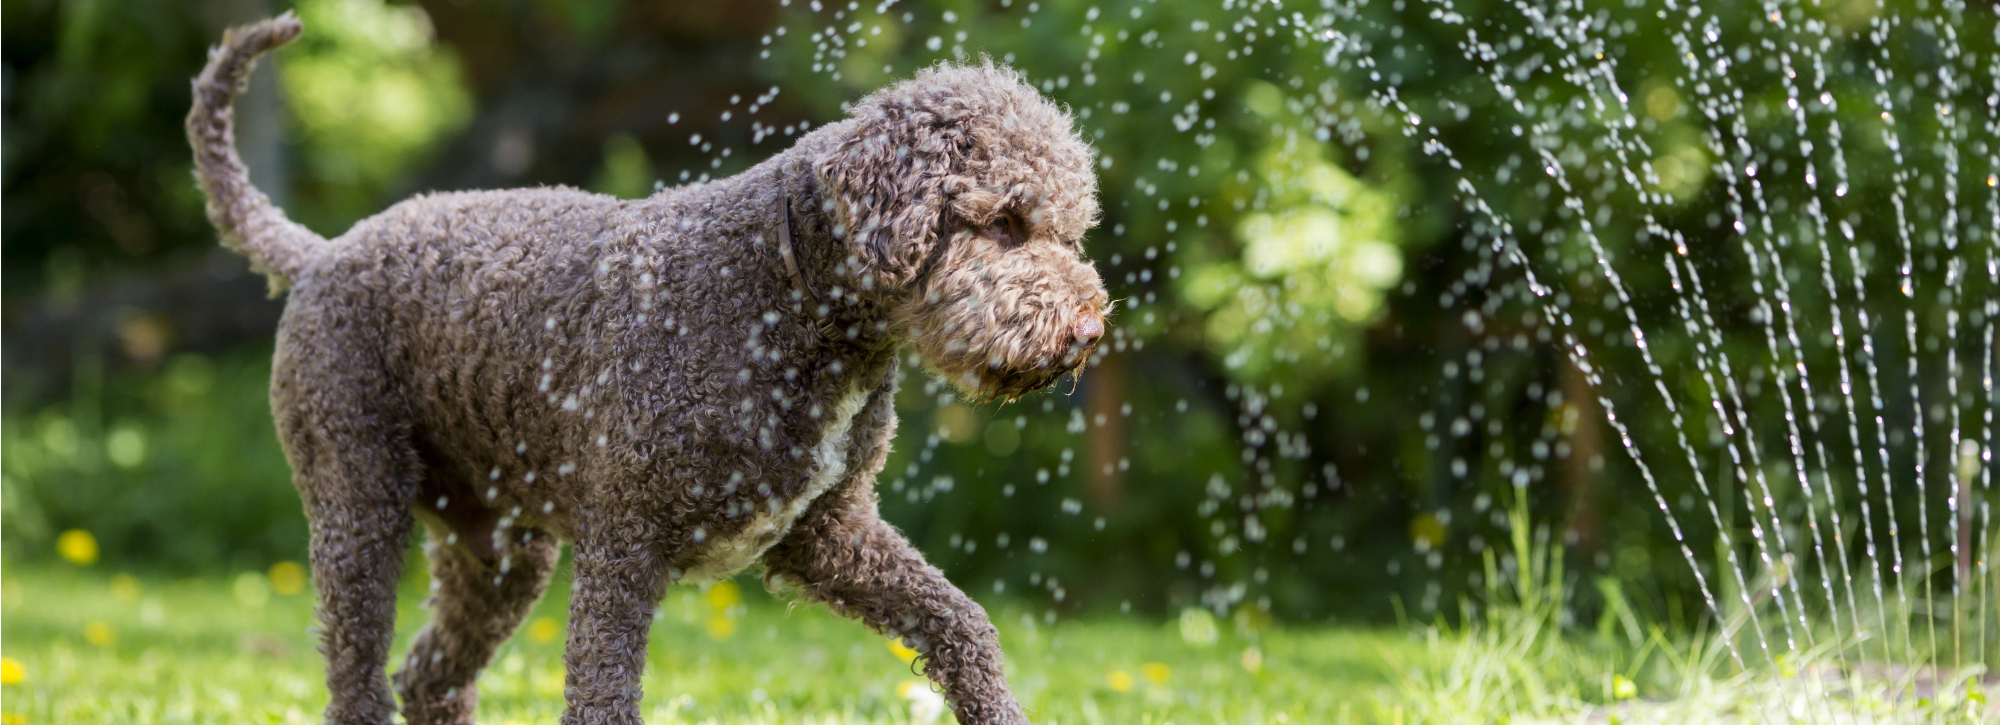 You'll understand your pet's care at Woodlawn Animal Hospital